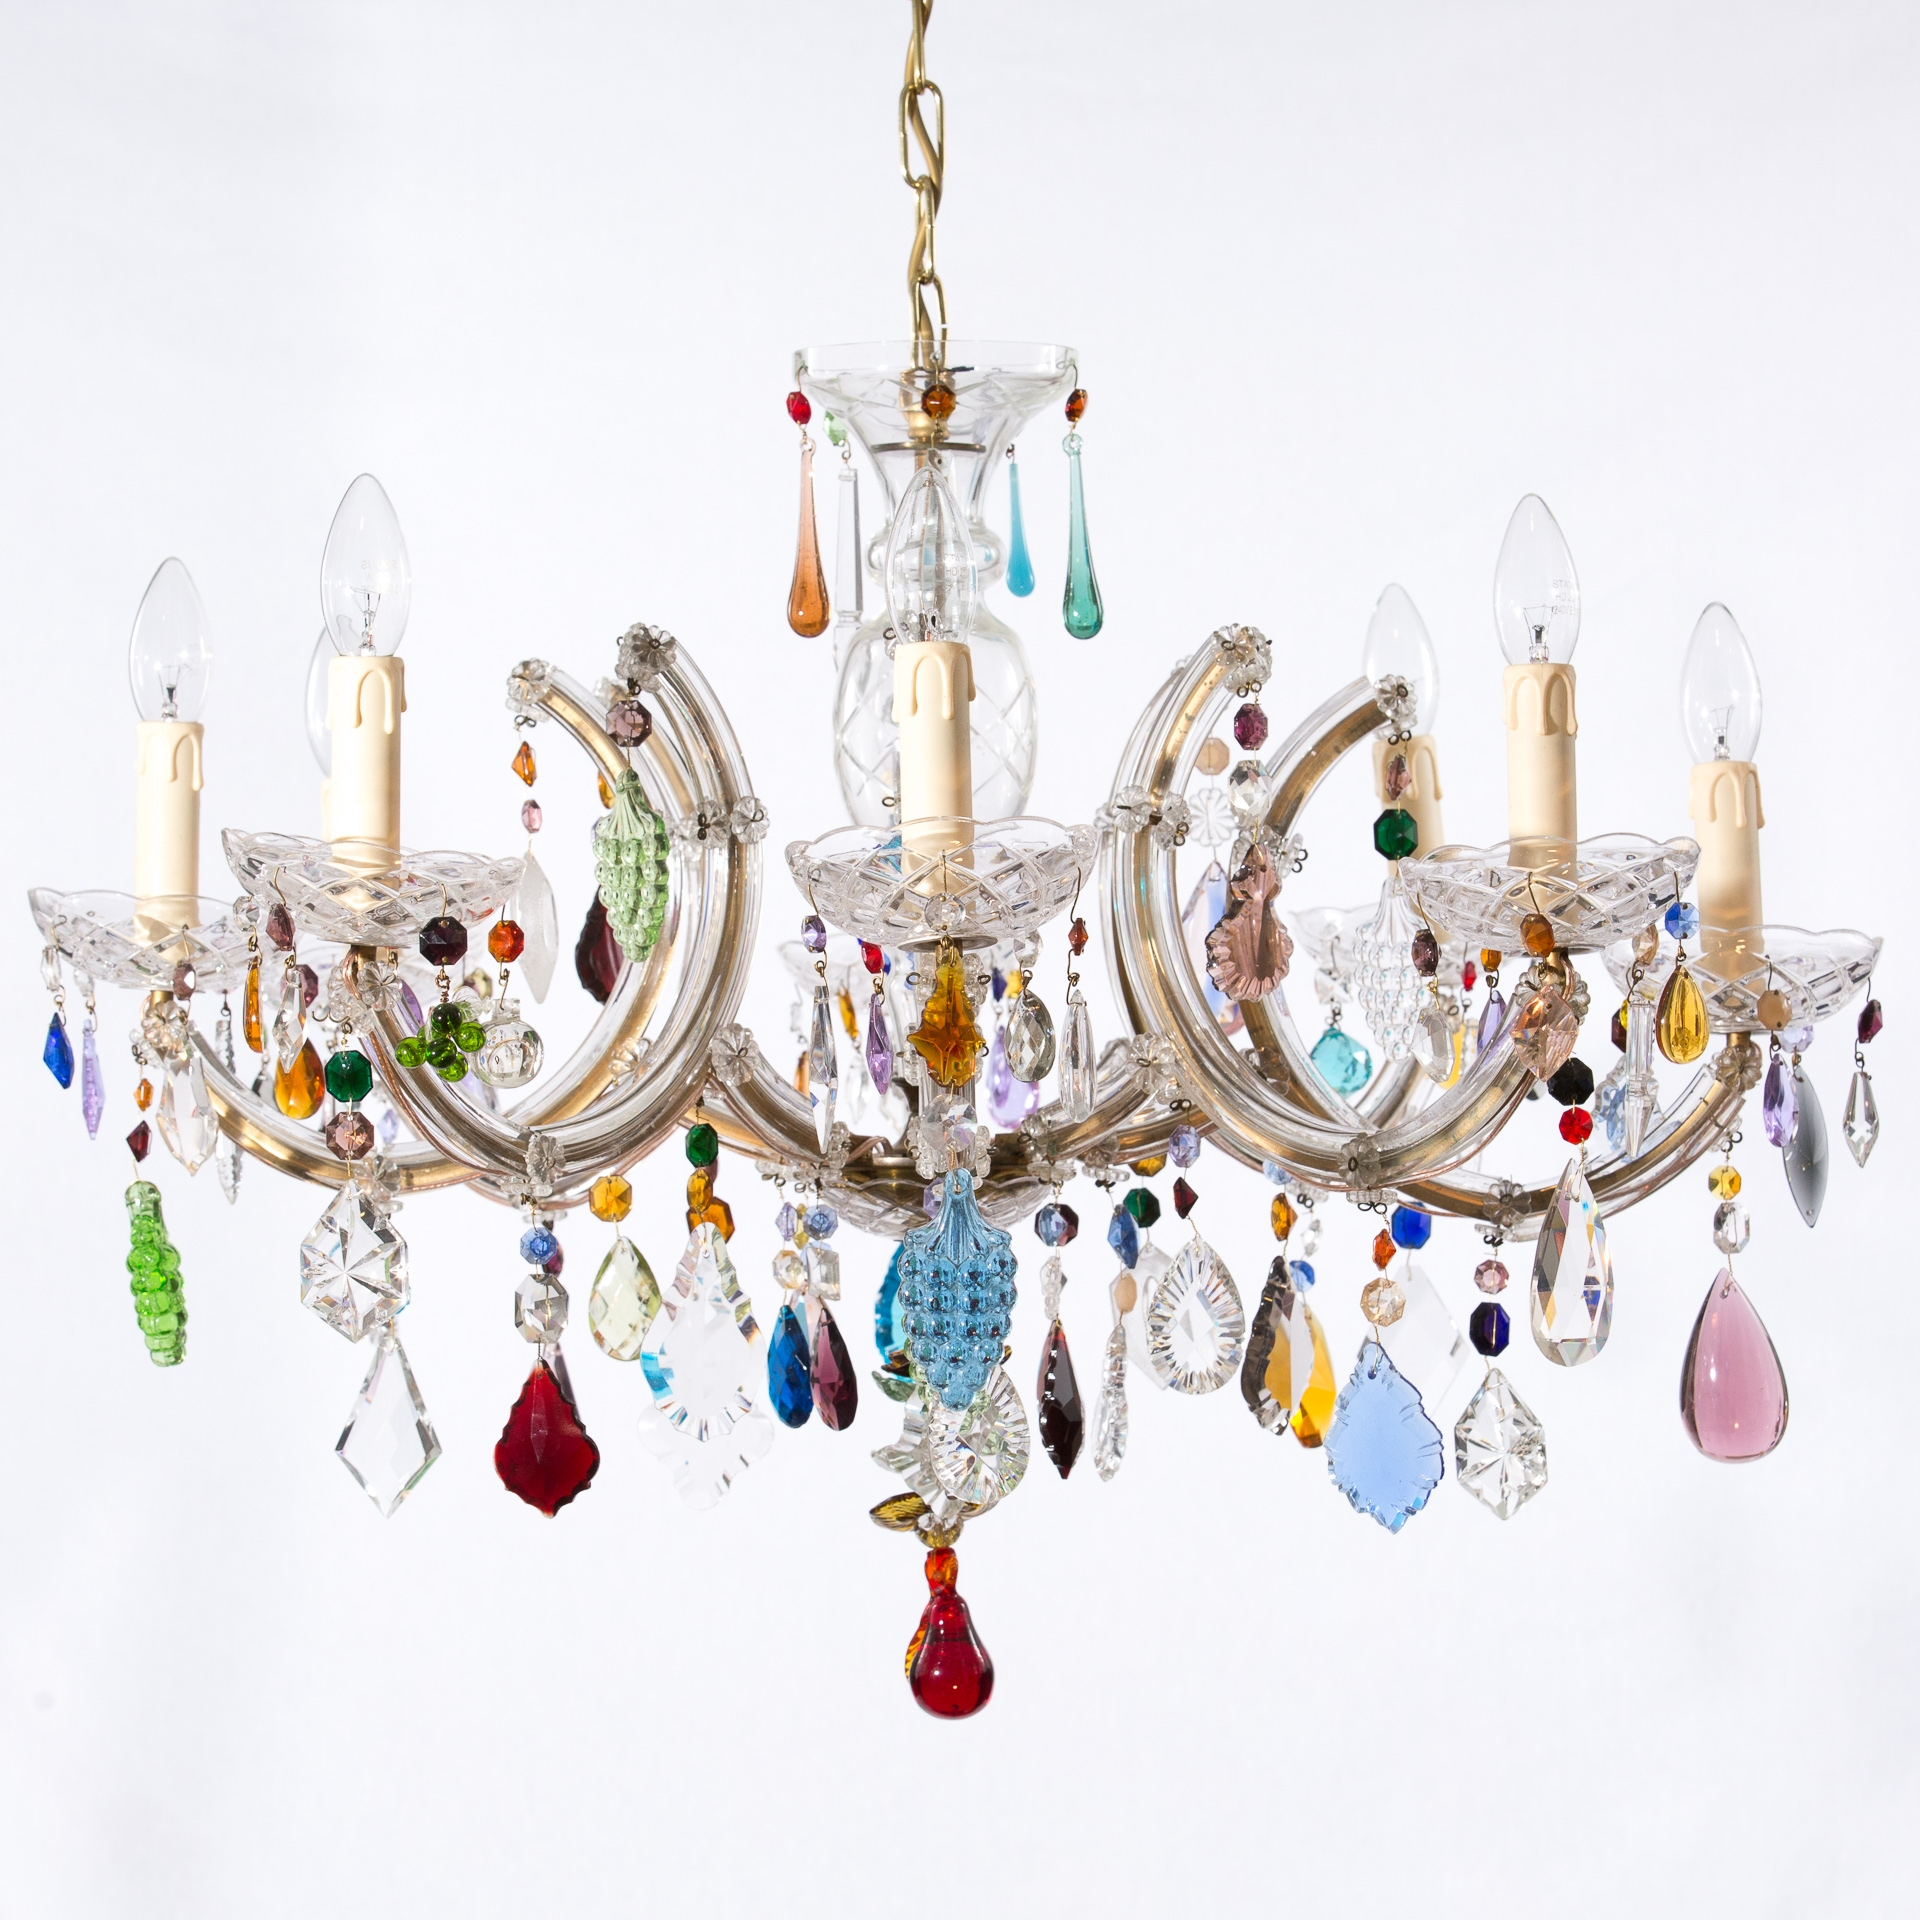 Chandeliers Honeybee Interiors Pertaining To Colourful Chandeliers (Image 6 of 15)